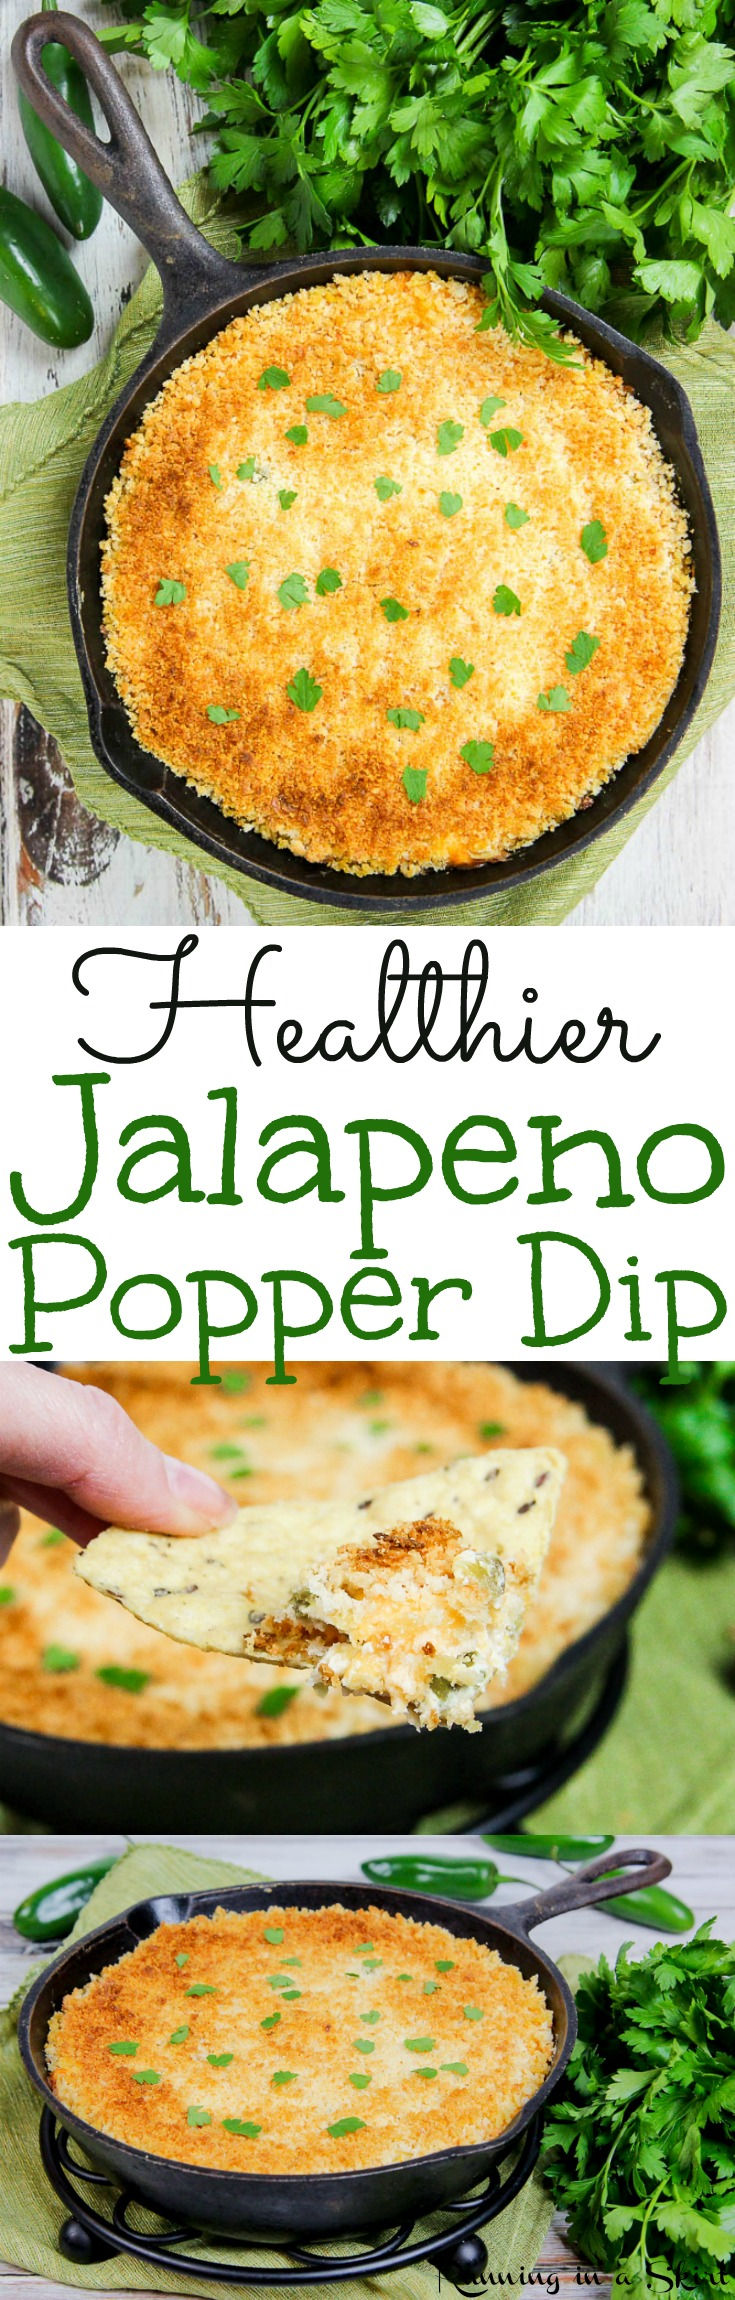 Easy Healthy Jalapeno Popper Dip recipe - with greek yogurt and with panko!  The perfect appetizers for your Super Bowl party. Also uses cream cheeses and cheddar cheese - not too spicy. A great vegetarian Superbowl food! Gluten free too. / Running in a Skirt